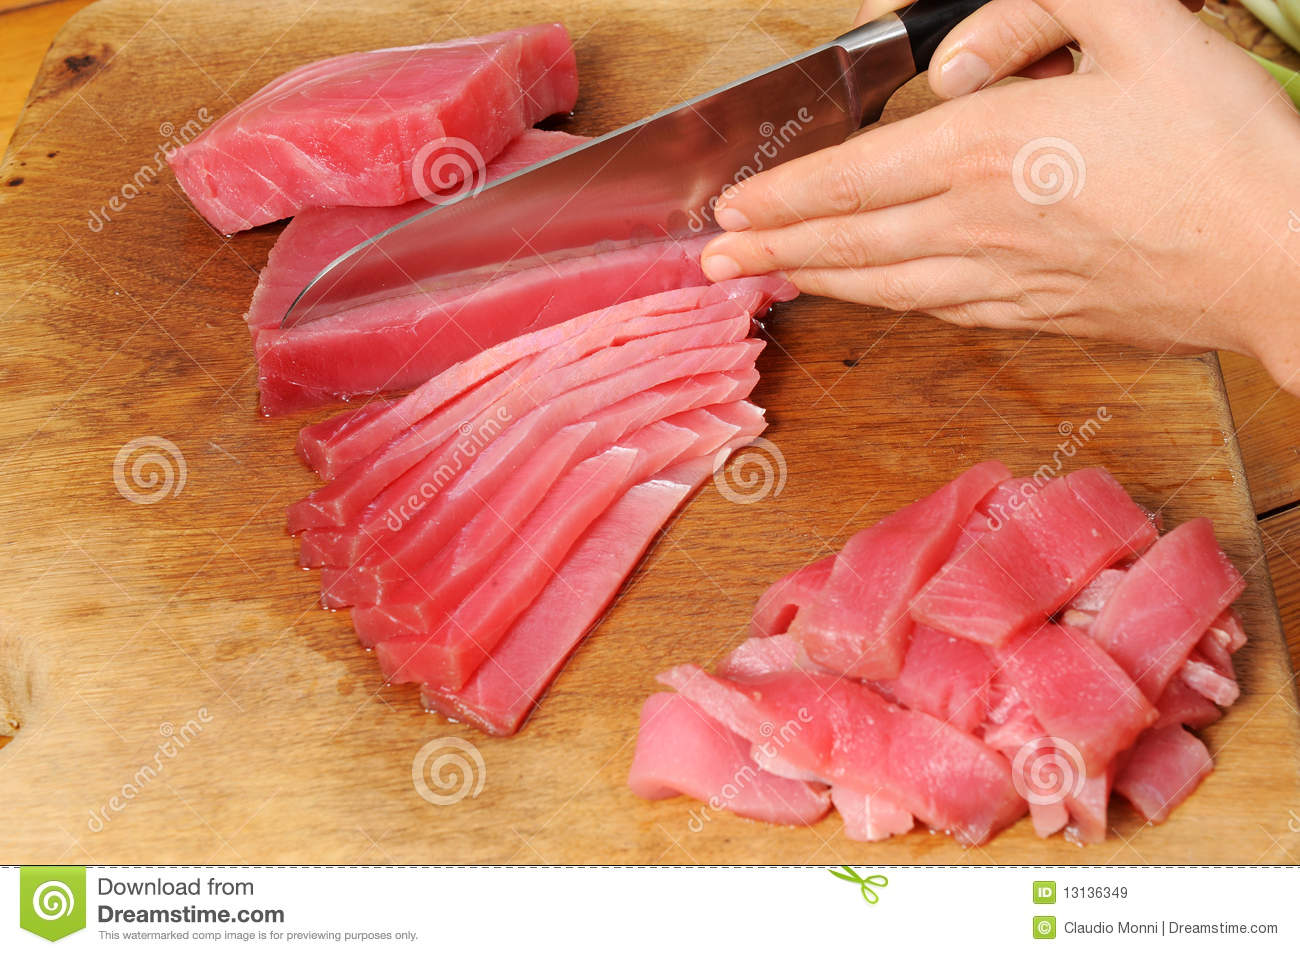 Cooking tuna fish stock image image of gastronomy close for What do tuna fish eat